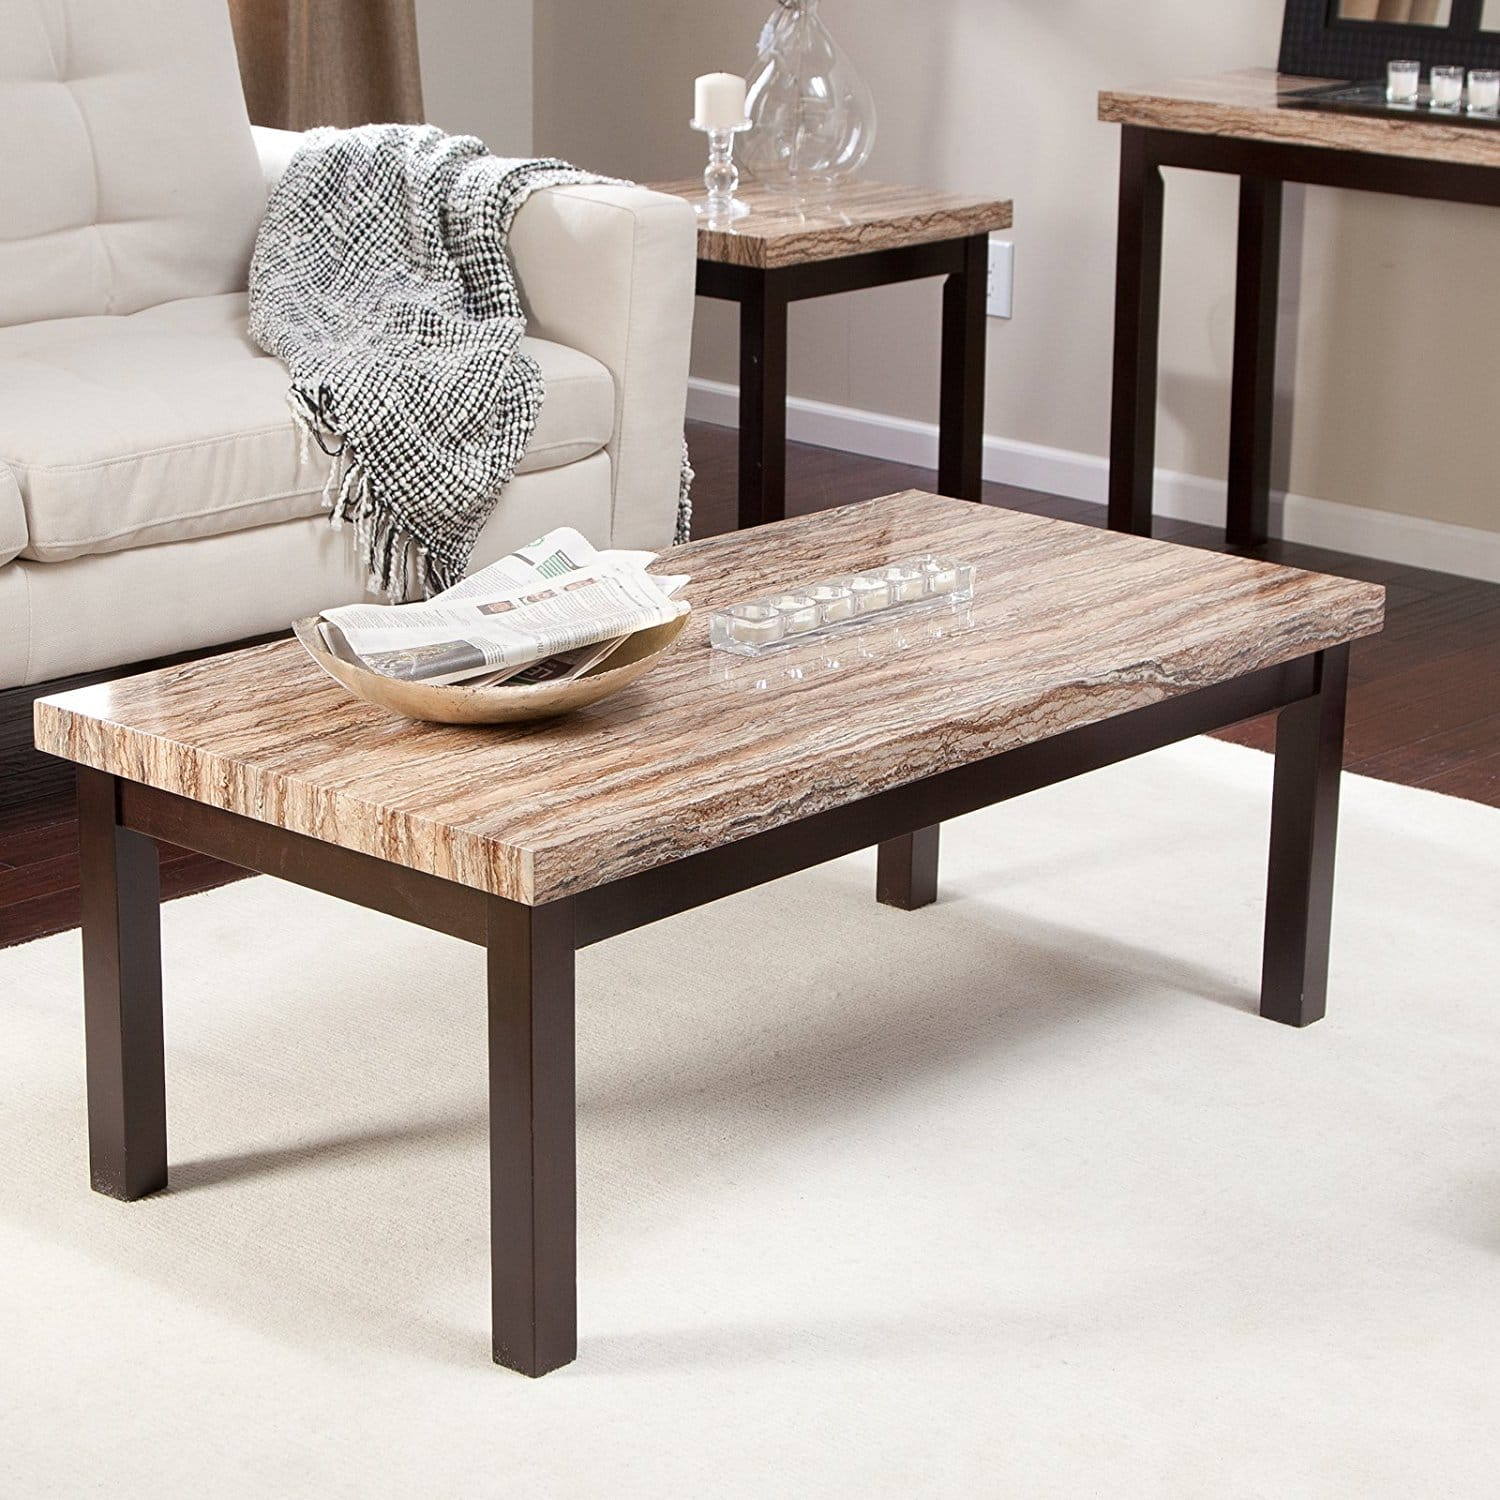 Cheap Marble Top Coffee Table: Cheap Coffee Tables Under $100 That Work For Every Style